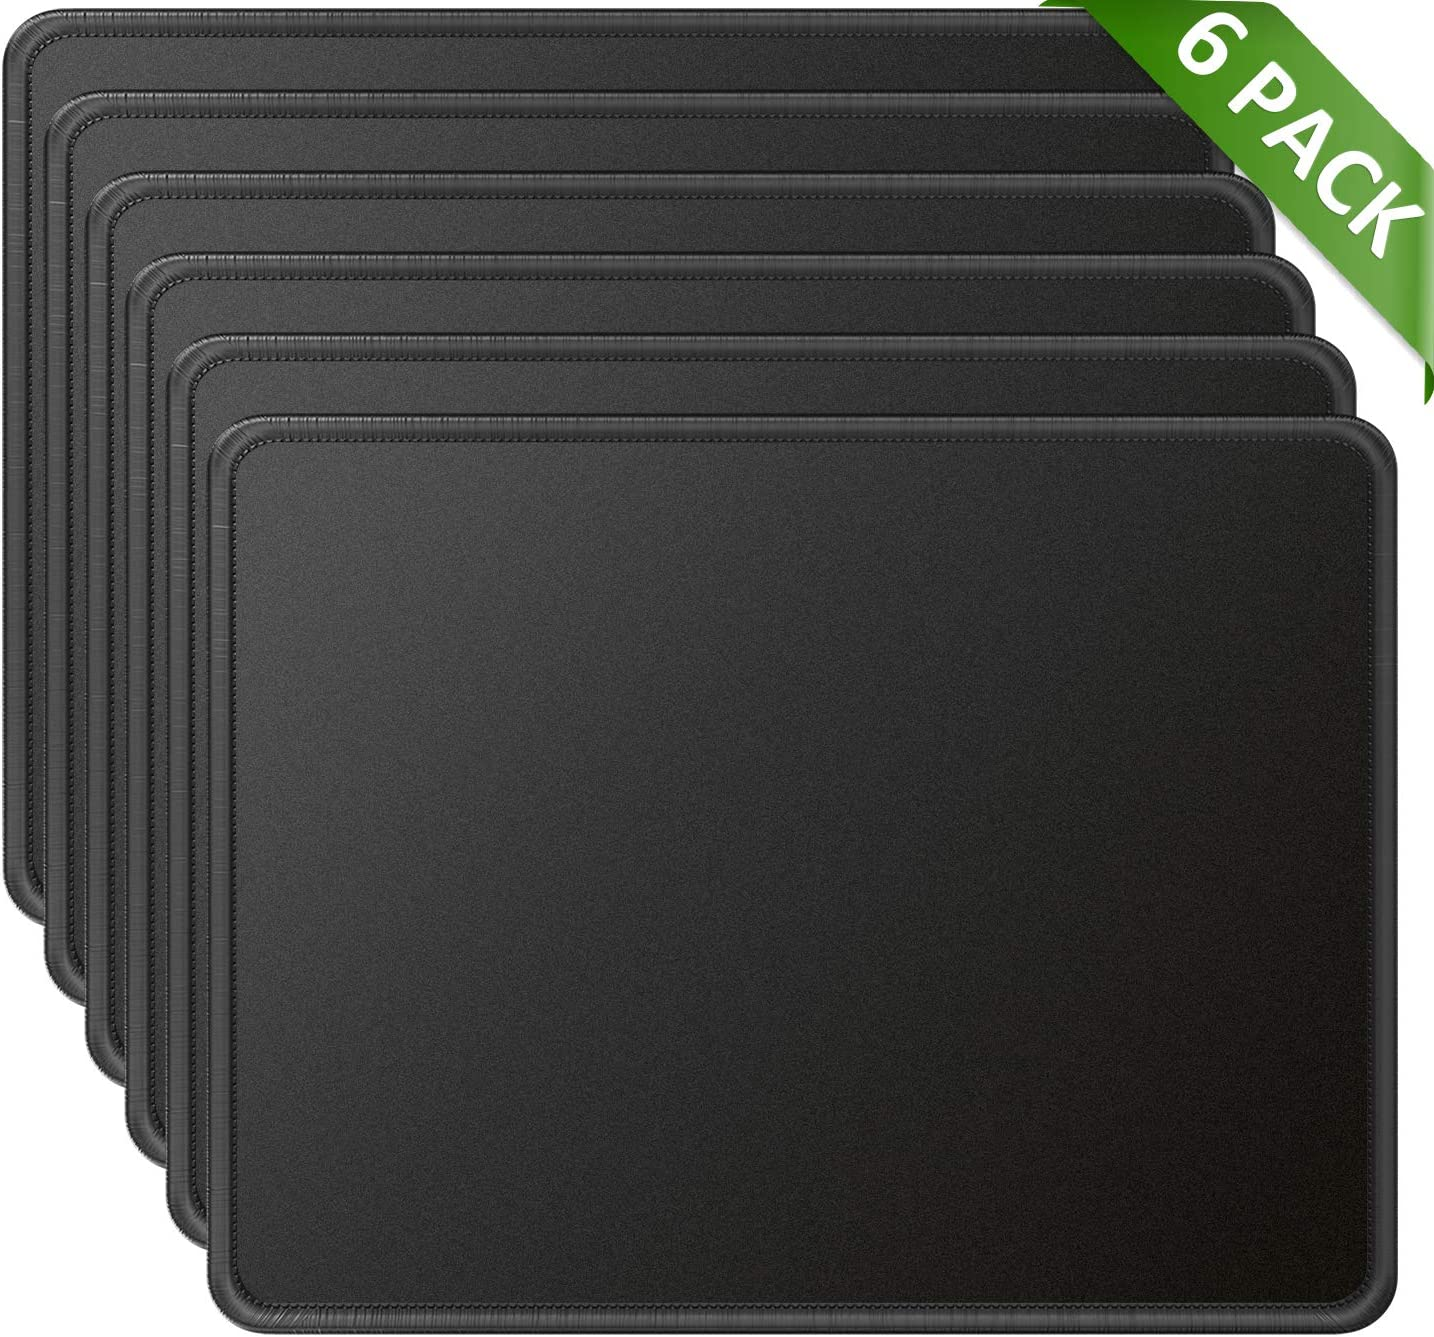 MROCO Mouse Pads Pack with Non-Slip Rubber Base, Premium-Textured and Waterproof Mousepads Bulk with Stitched Edges, Mouse Pad for Computers, Laptop, Office & Home, 11x8.5 inches, 3mm, 6 Pack, Black